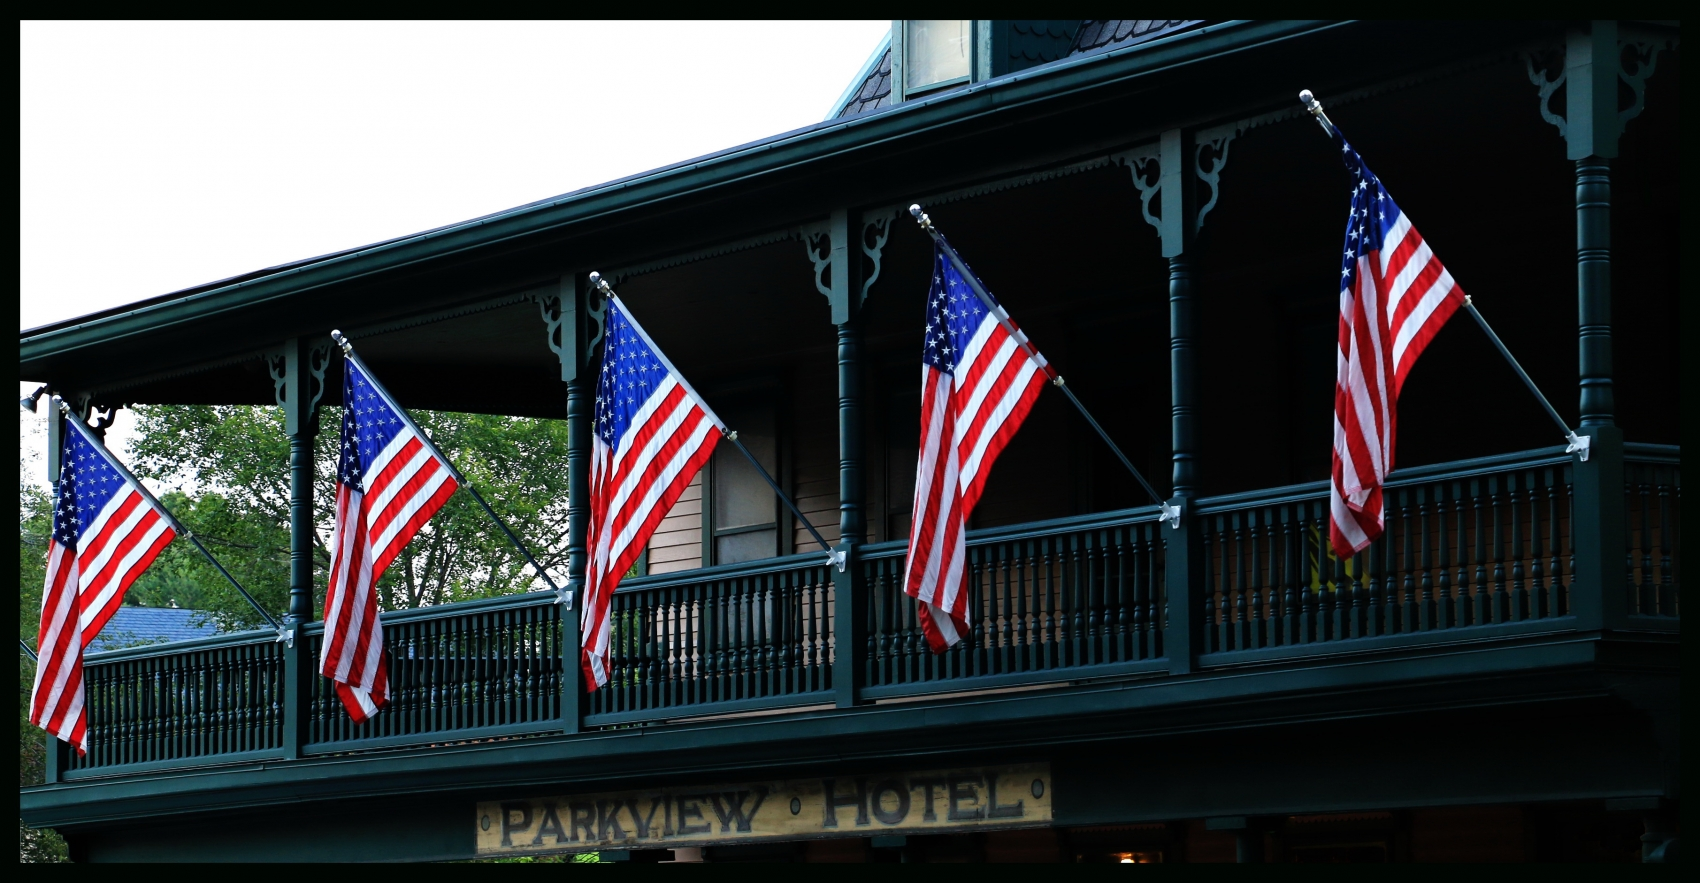 Parkview Hotel - Lititz, PA